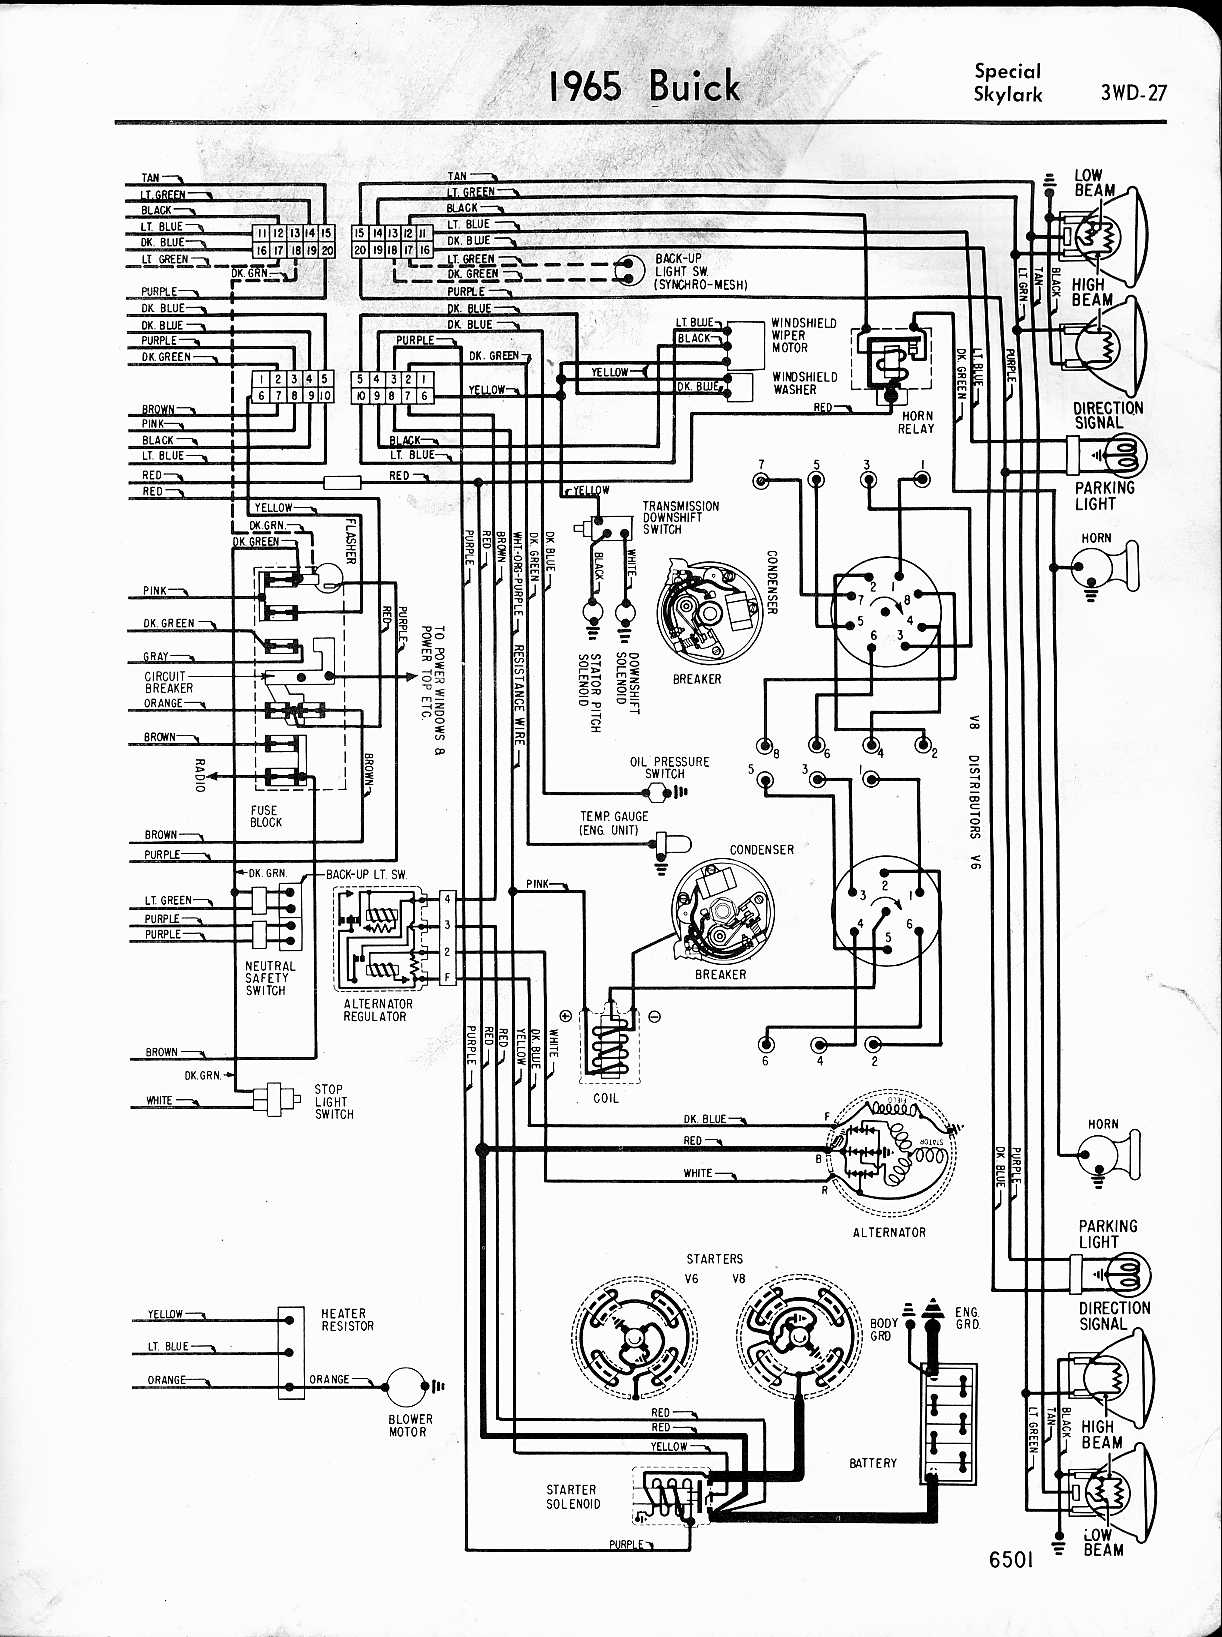 Free Buick Wiring Diagrams Electrical Schematics Weebly 1957 1965 Citroen Ax